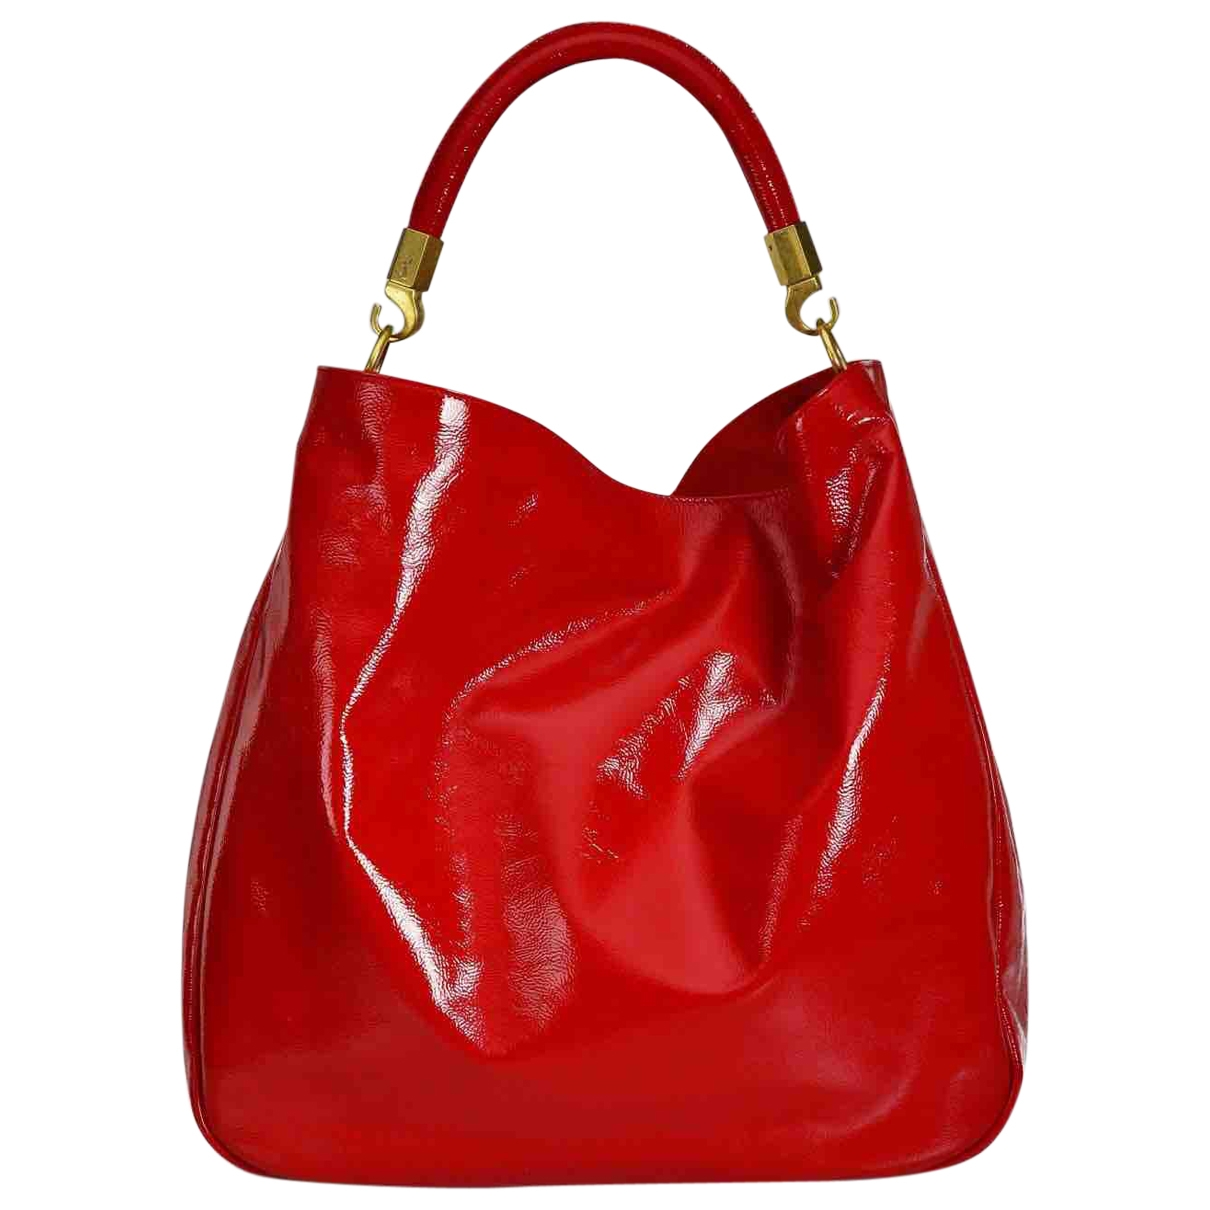 Yves Saint Laurent Roady Red Patent leather handbag for Women \N